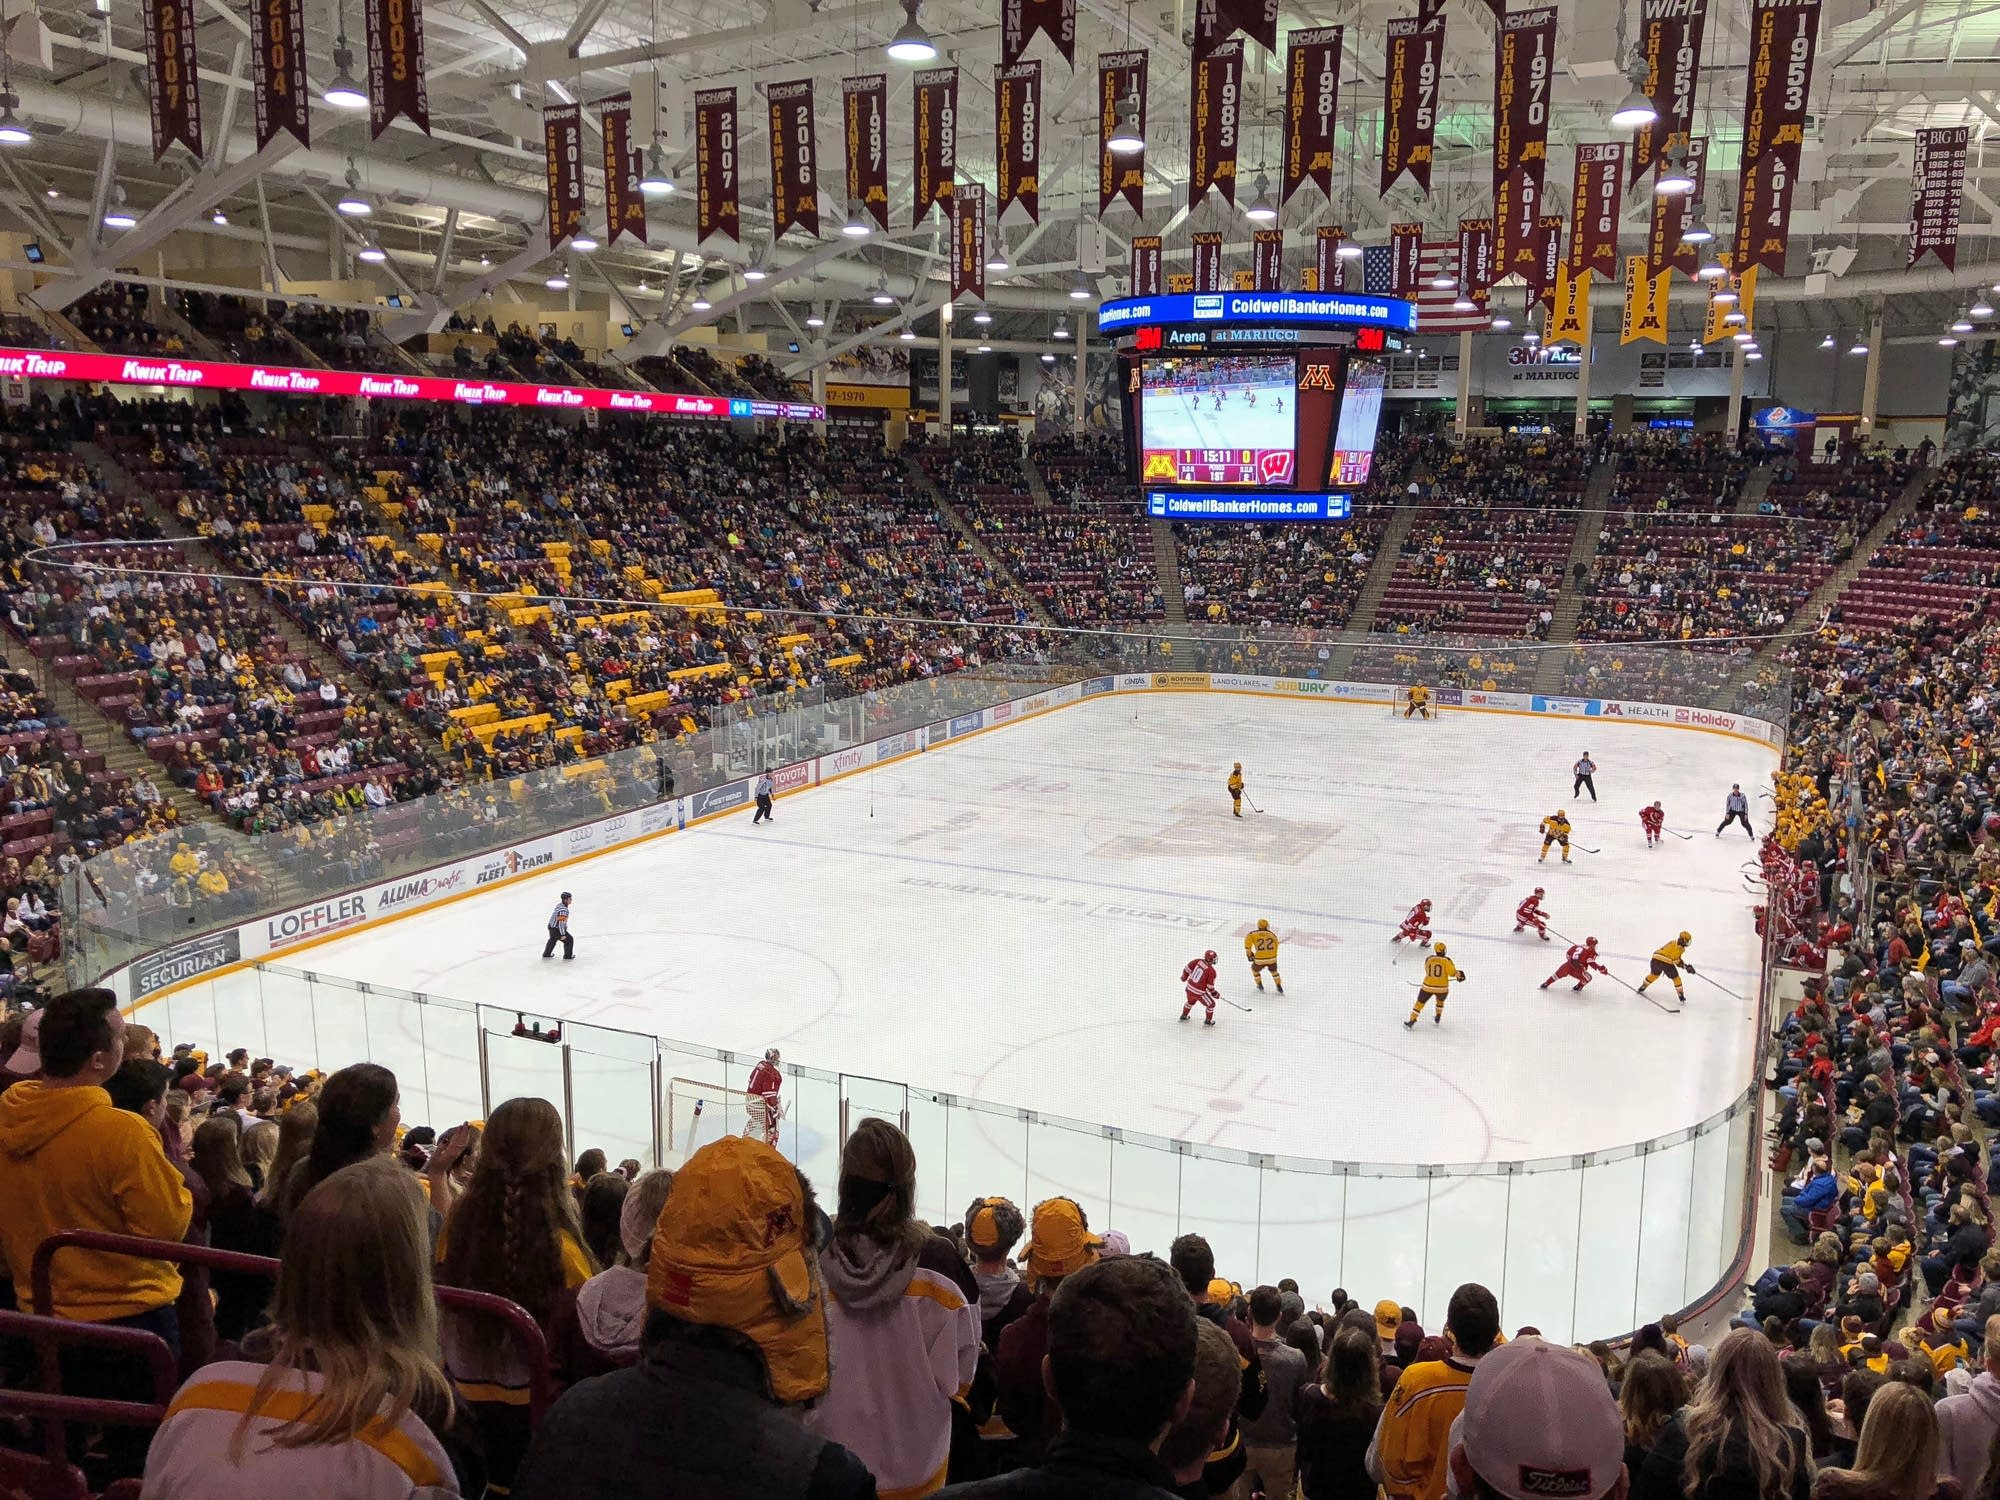 Low attendance, even for big rivalry games, is a problem for U hockey.